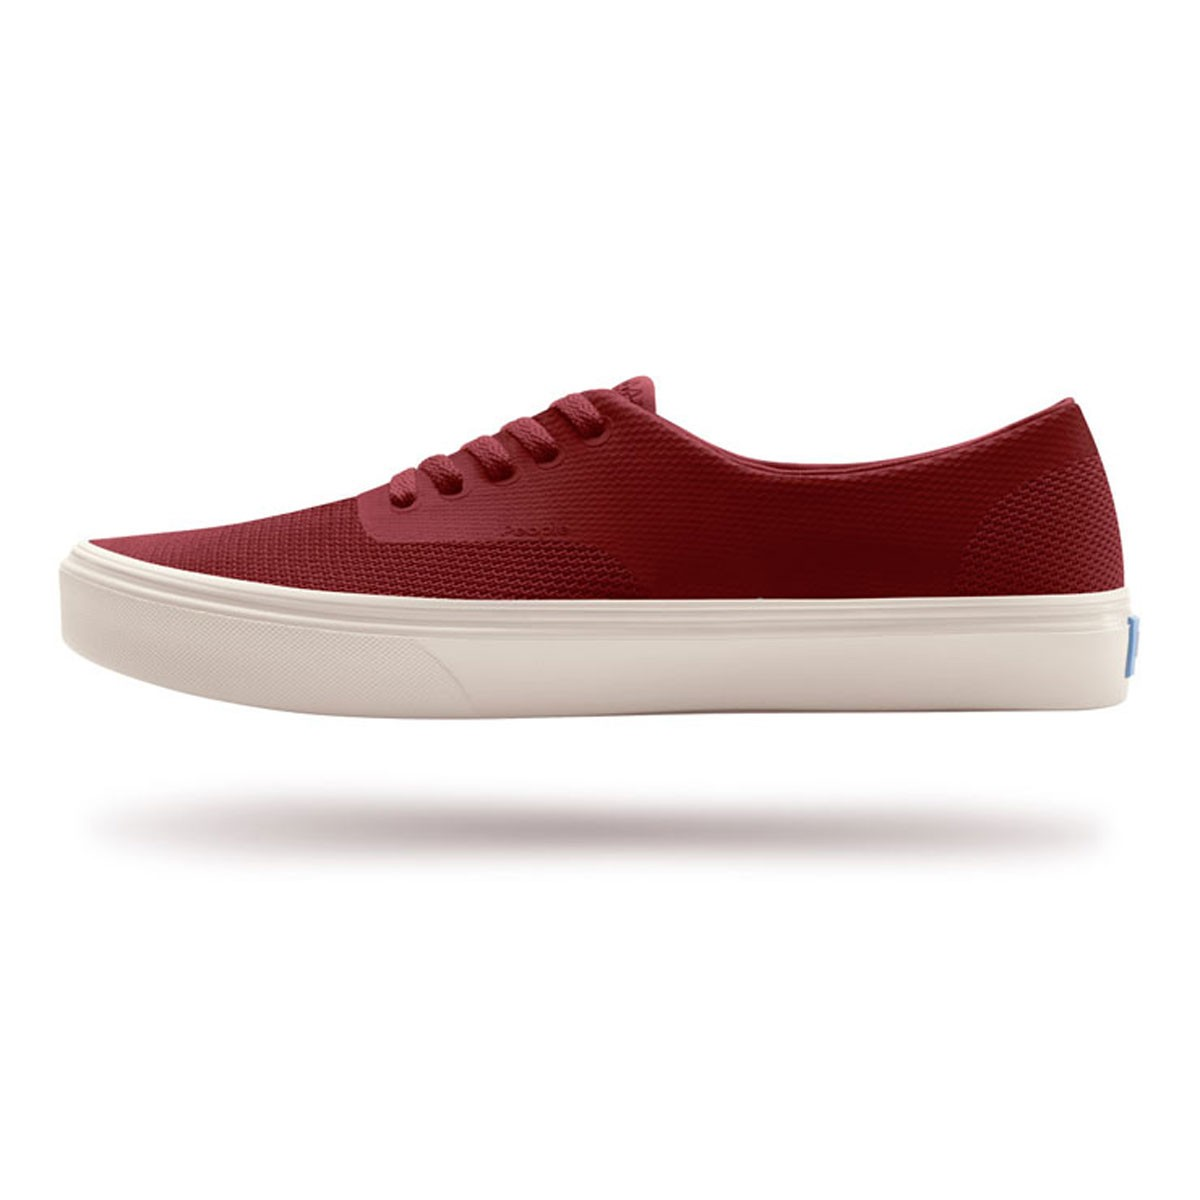 ピープル PEOPLE 正規品 メンズ 靴 シューズ  THE STANLEY NC02-031 HIGHLAND RED / PICKET WHITE